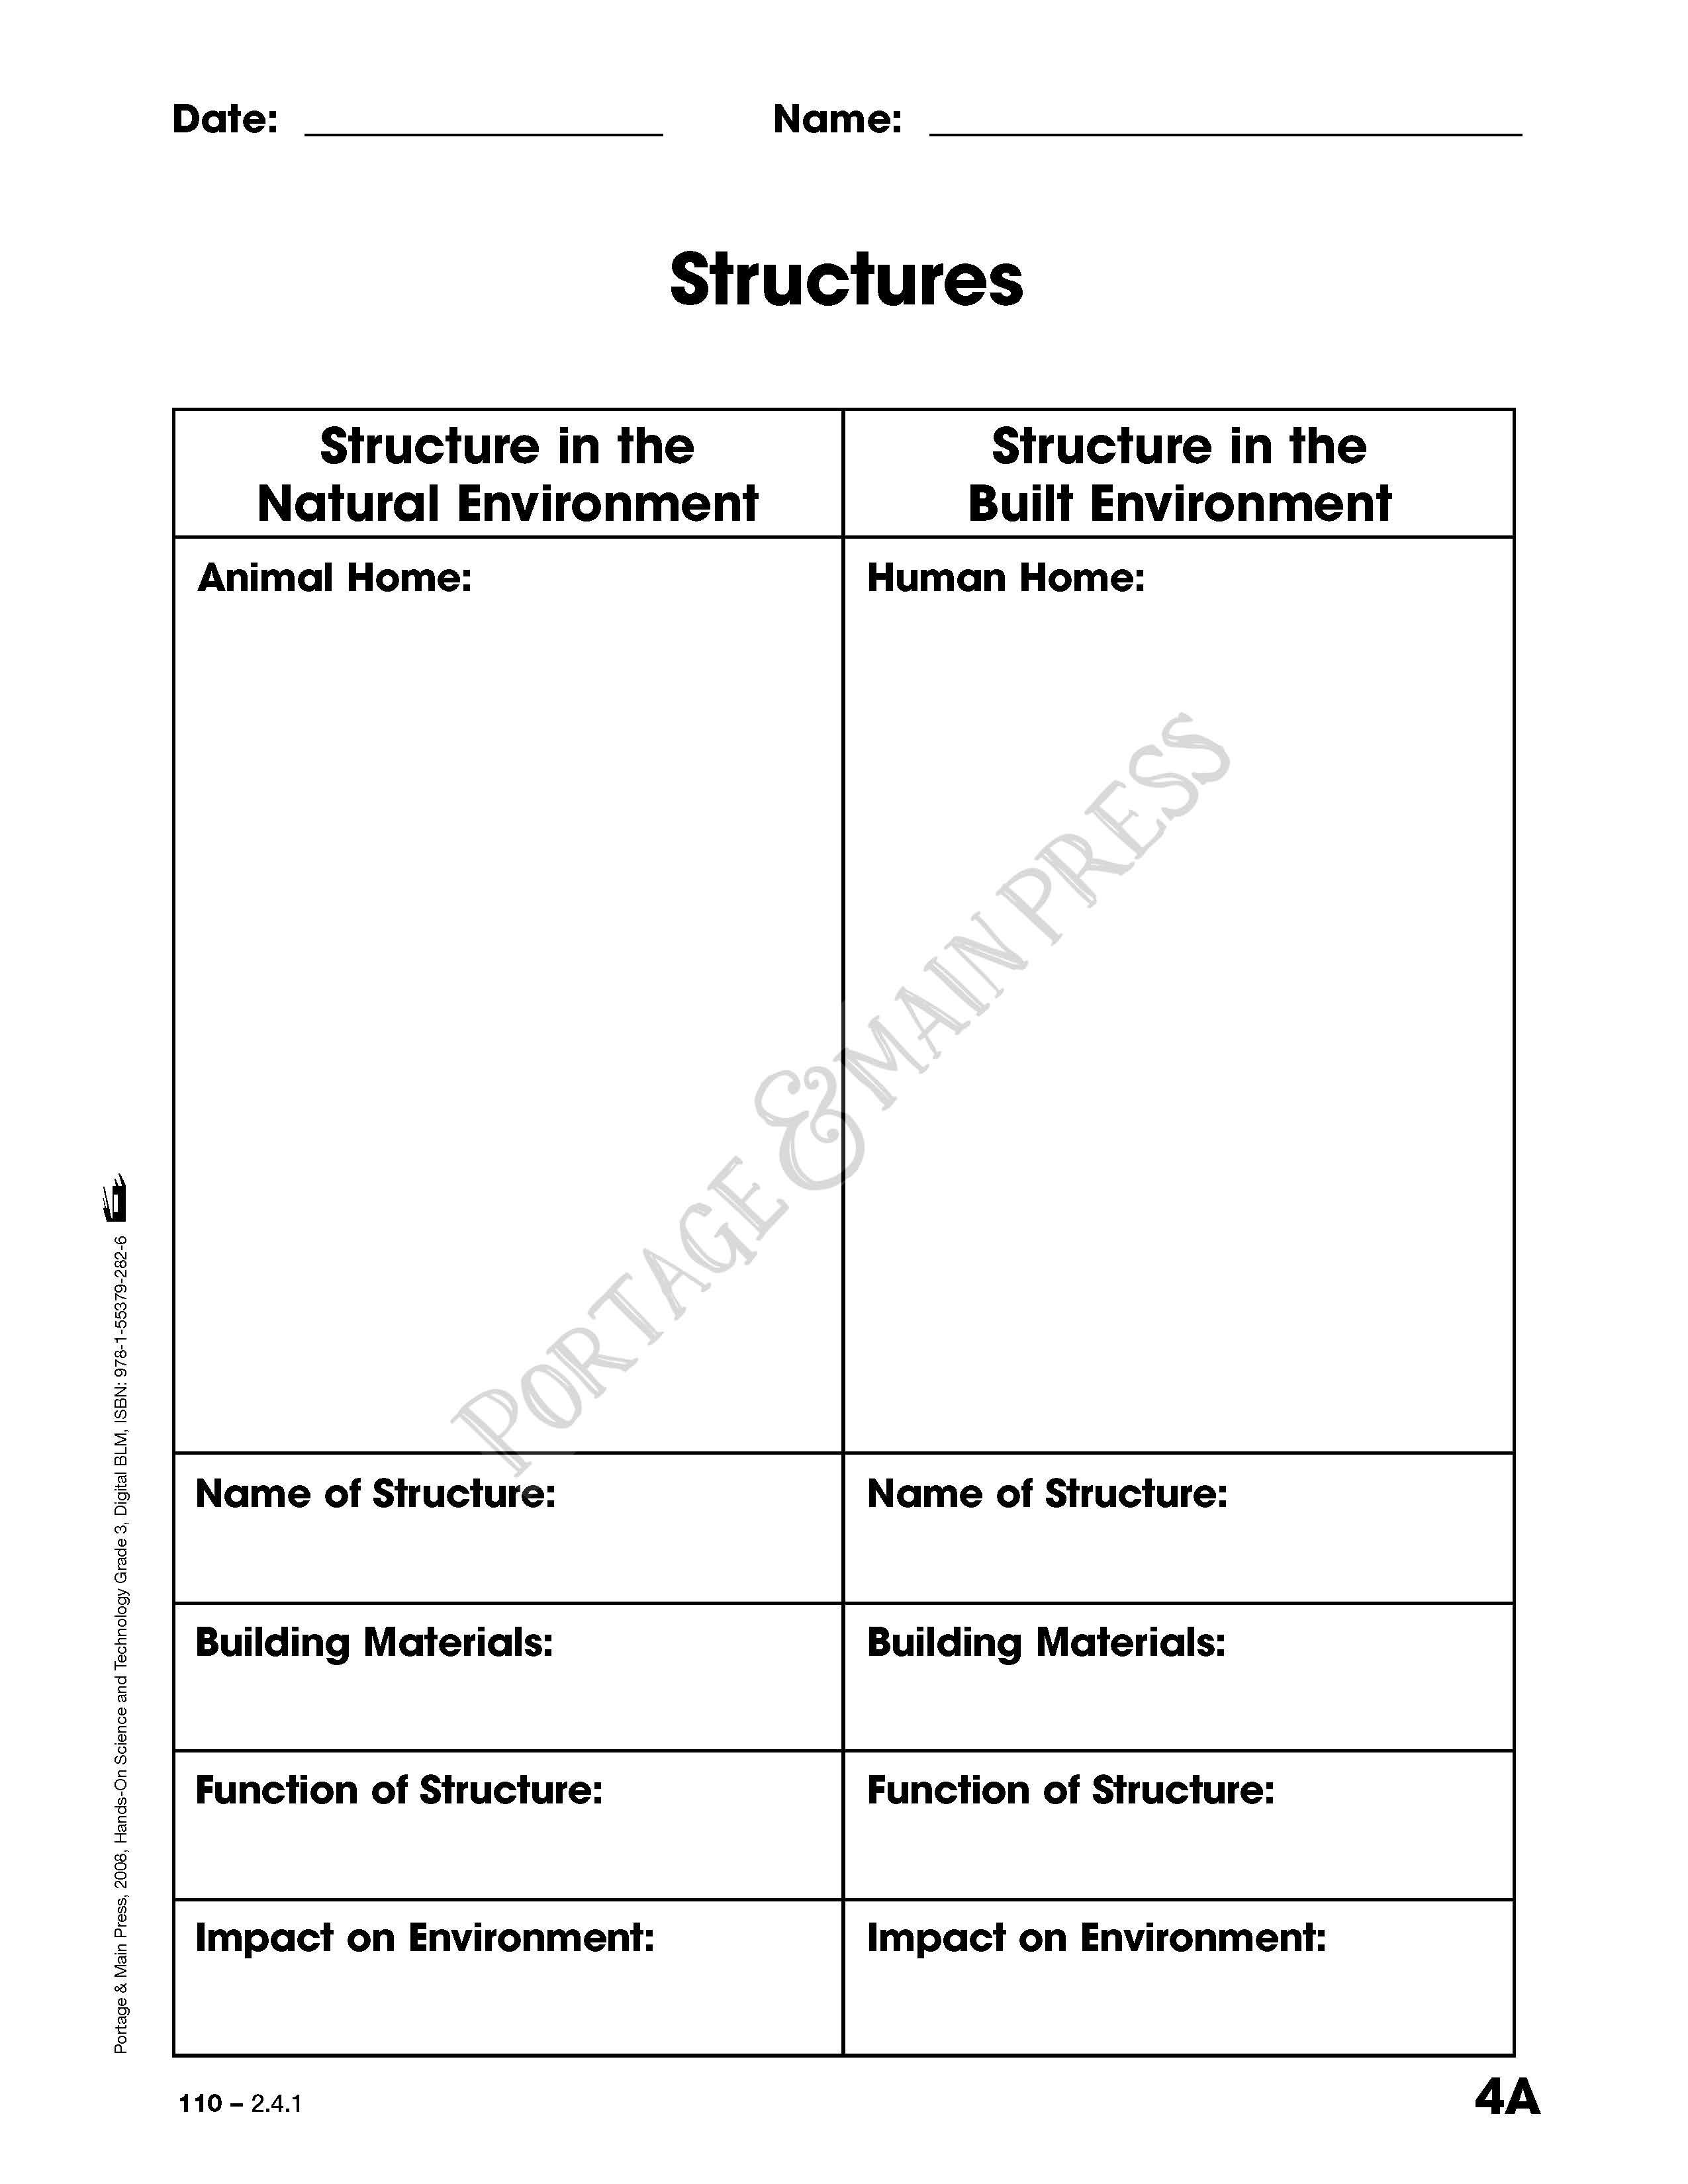 grade 3 science structures activity sheet structures and materials unit pinterest. Black Bedroom Furniture Sets. Home Design Ideas